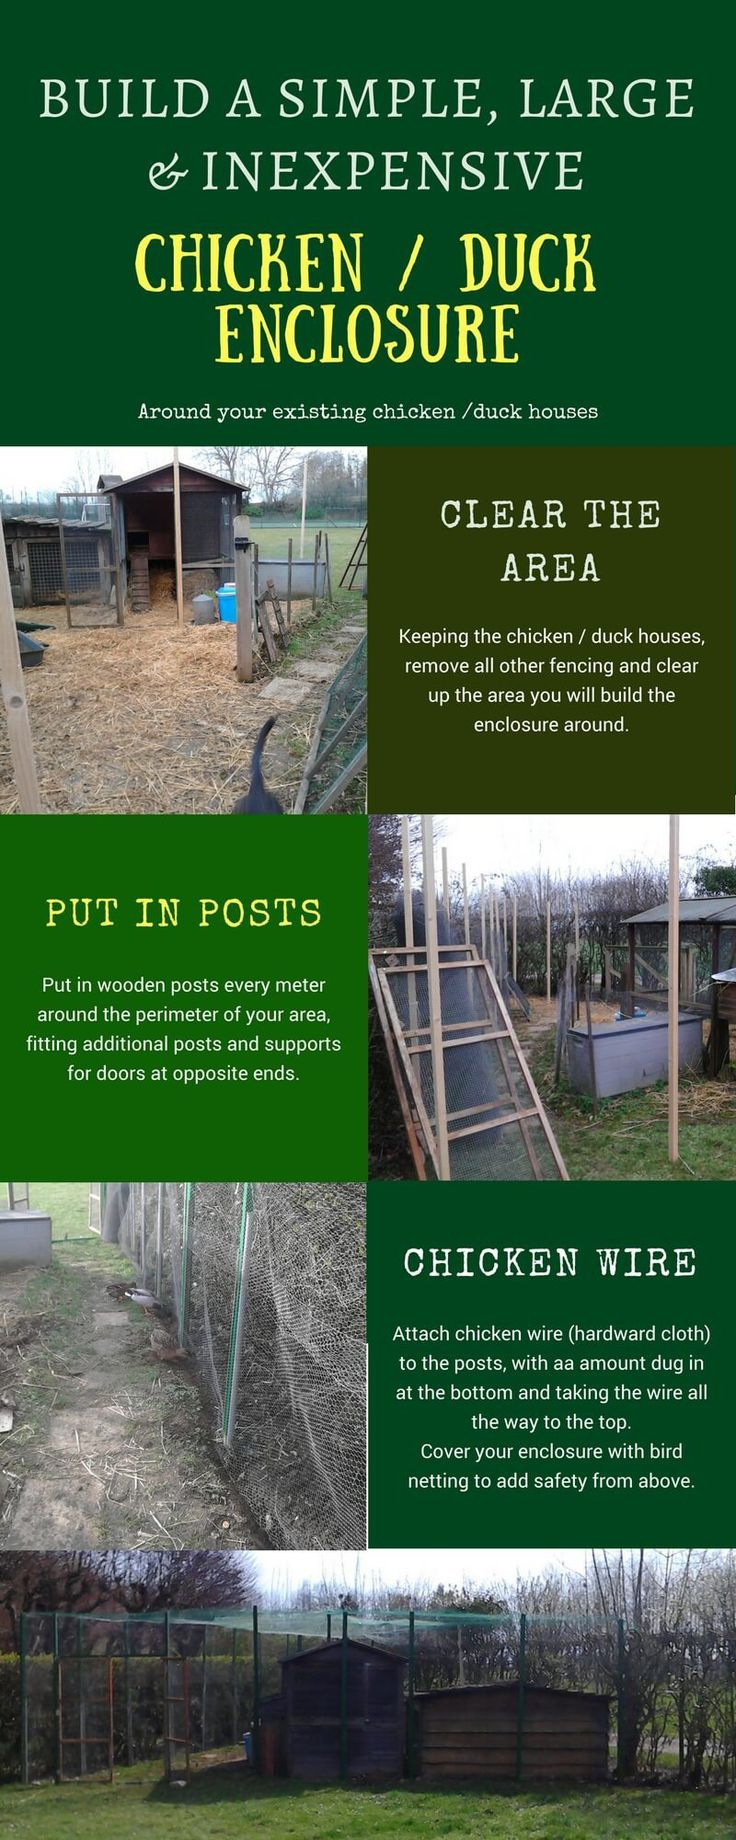 best 25 duck enclosure ideas on pinterest duck pond duck pens